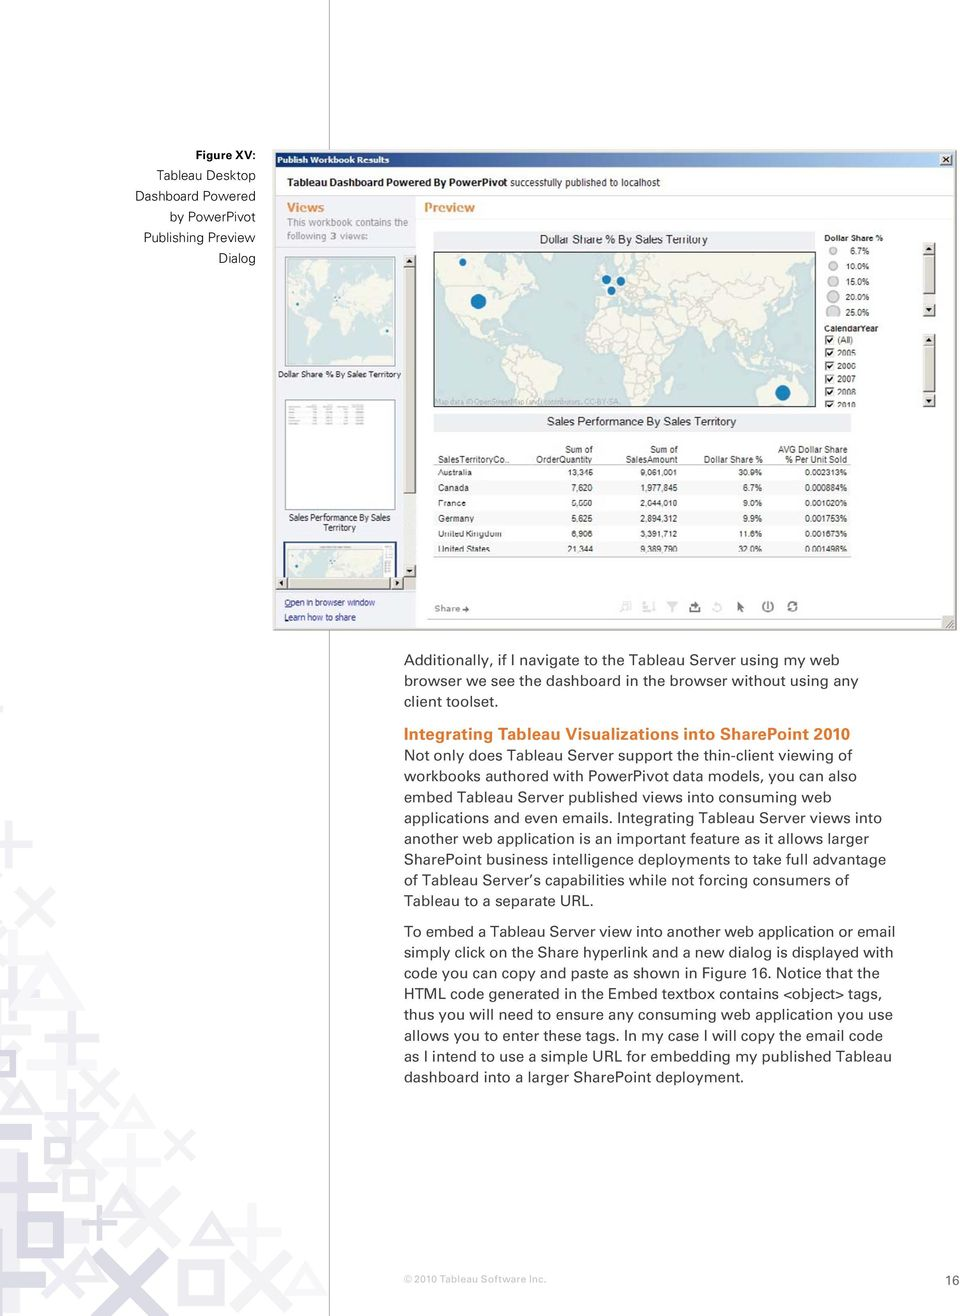 Integrating Tableau Visualizations into SharePoint 2010 Not only does Tableau Server support the thin-client viewing of workbooks authored with PowerPivot data models, you can also embed Tableau